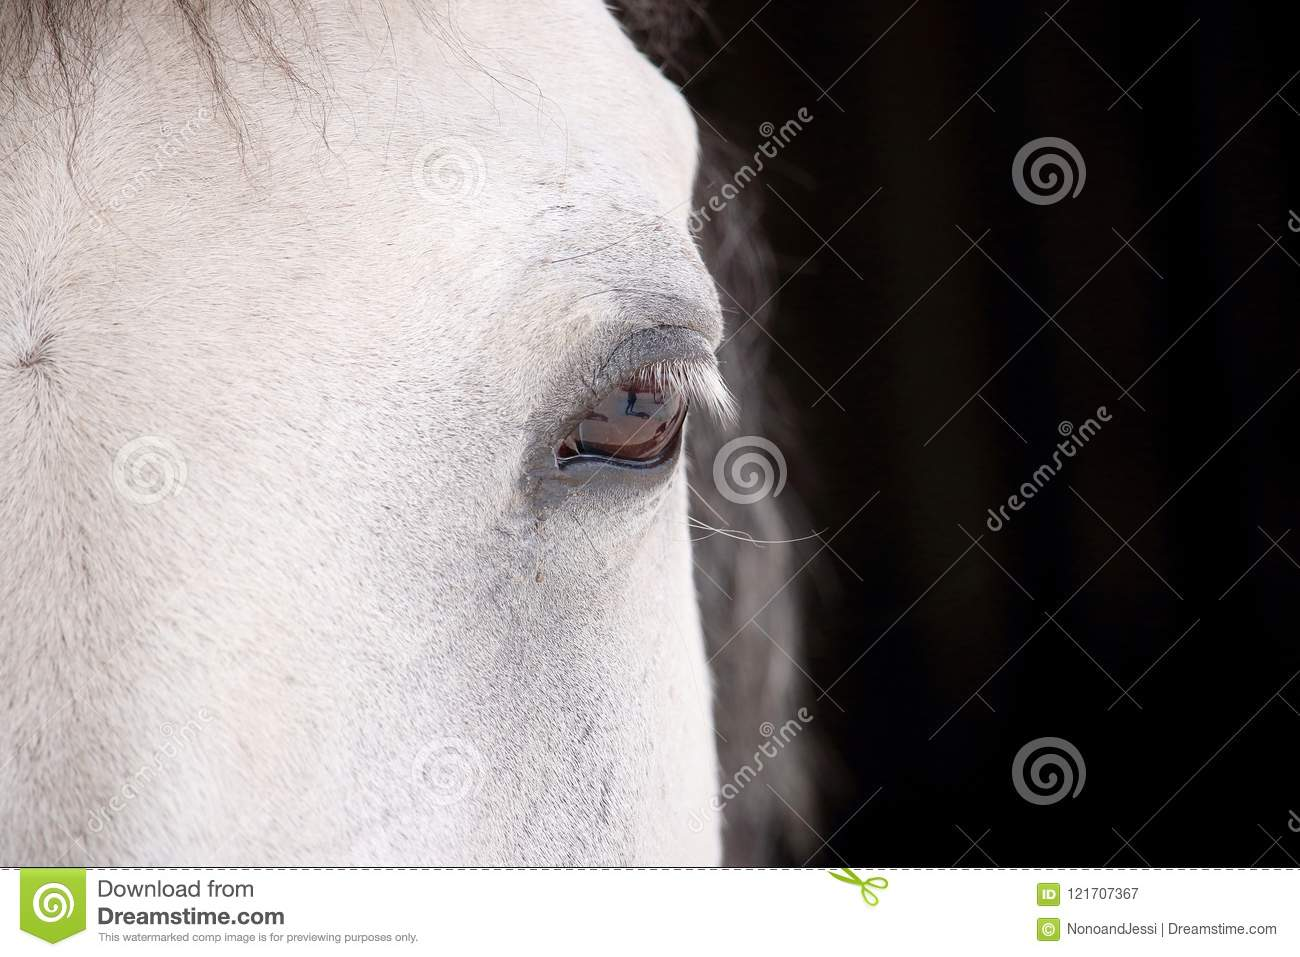 Eye of a spotted white horse looking at us in front of the stables